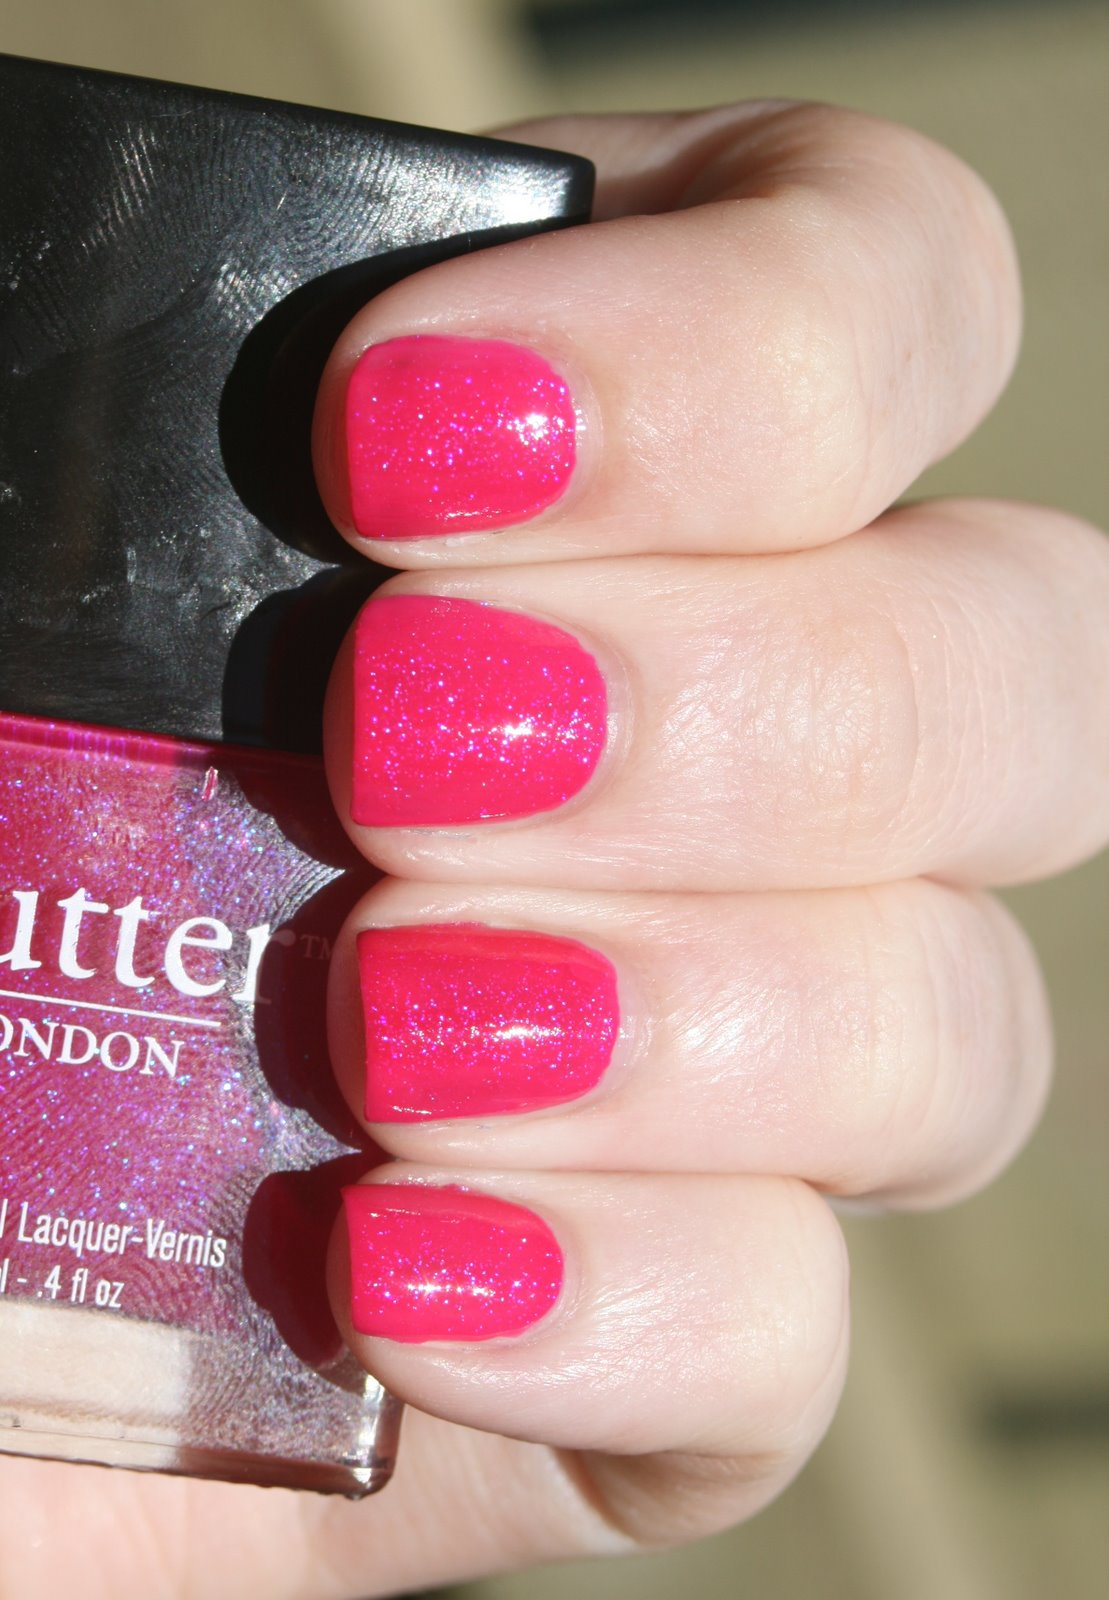 Butter London Disco Biscuit over NARS Schiap swatch